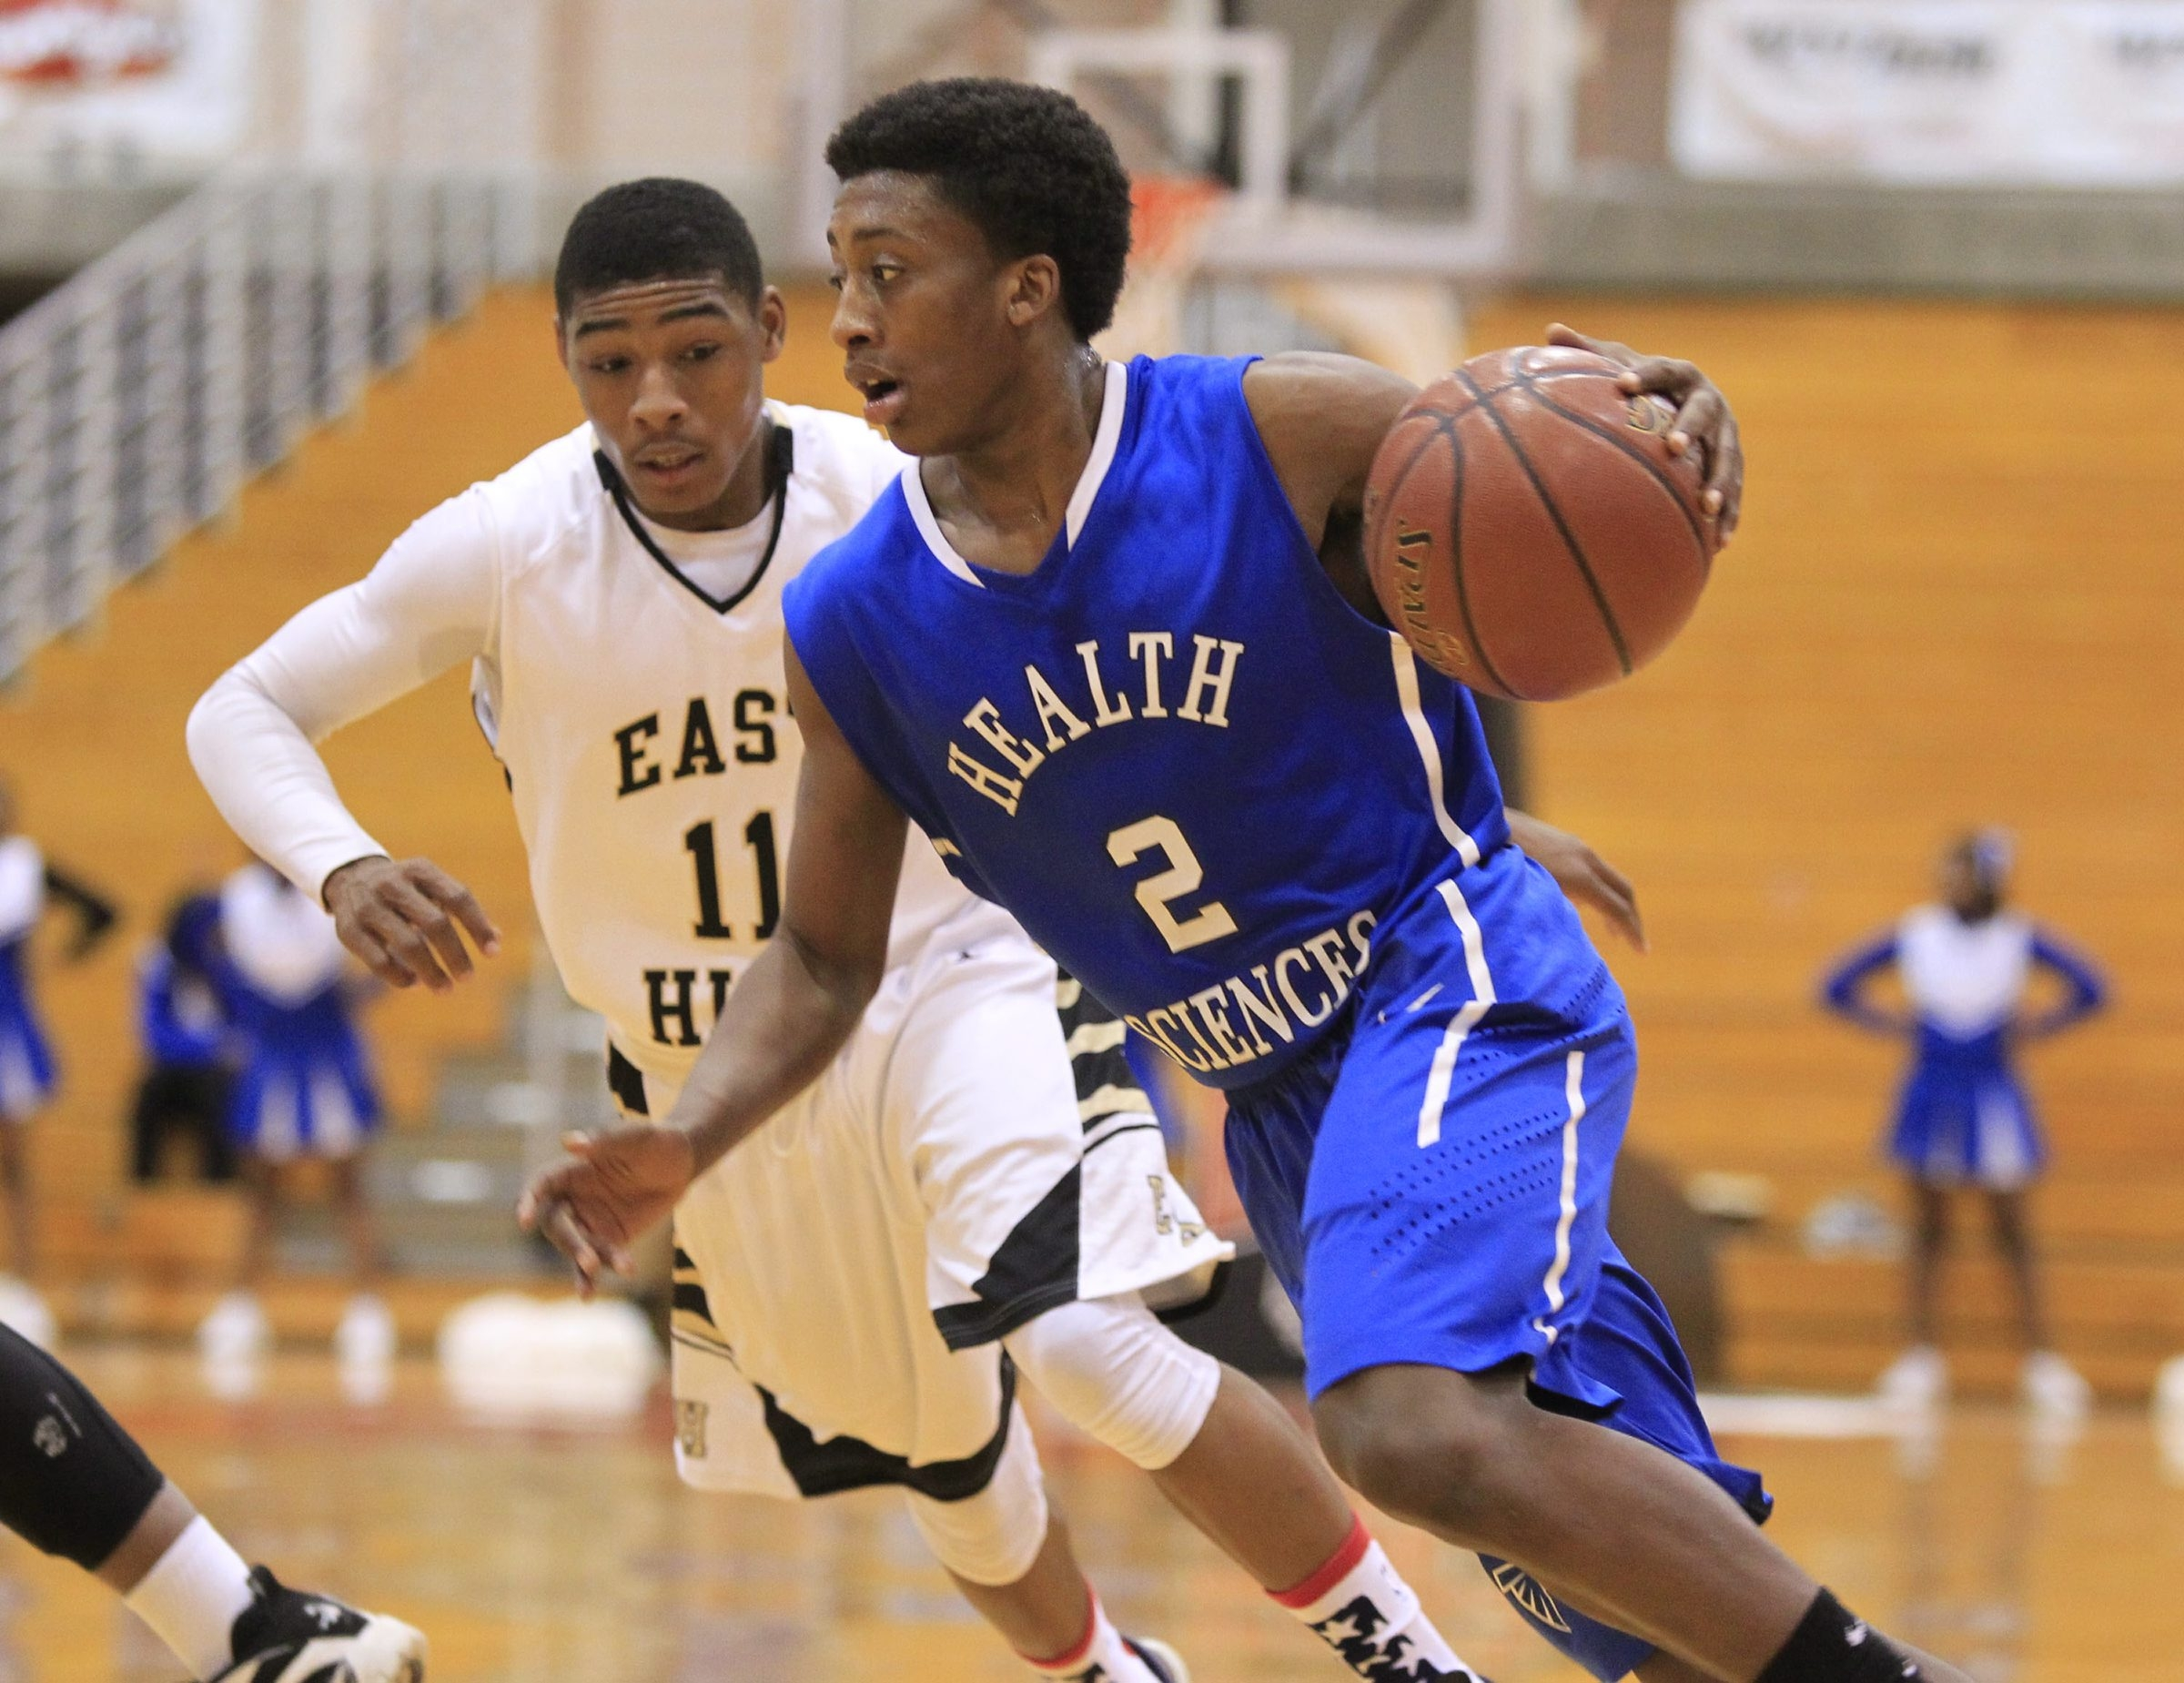 East's Percy Bryant is in pursuit of Health Sciences' Allen Wright during the Class B-2 semifinal at the Buffalo State Sports Arena.